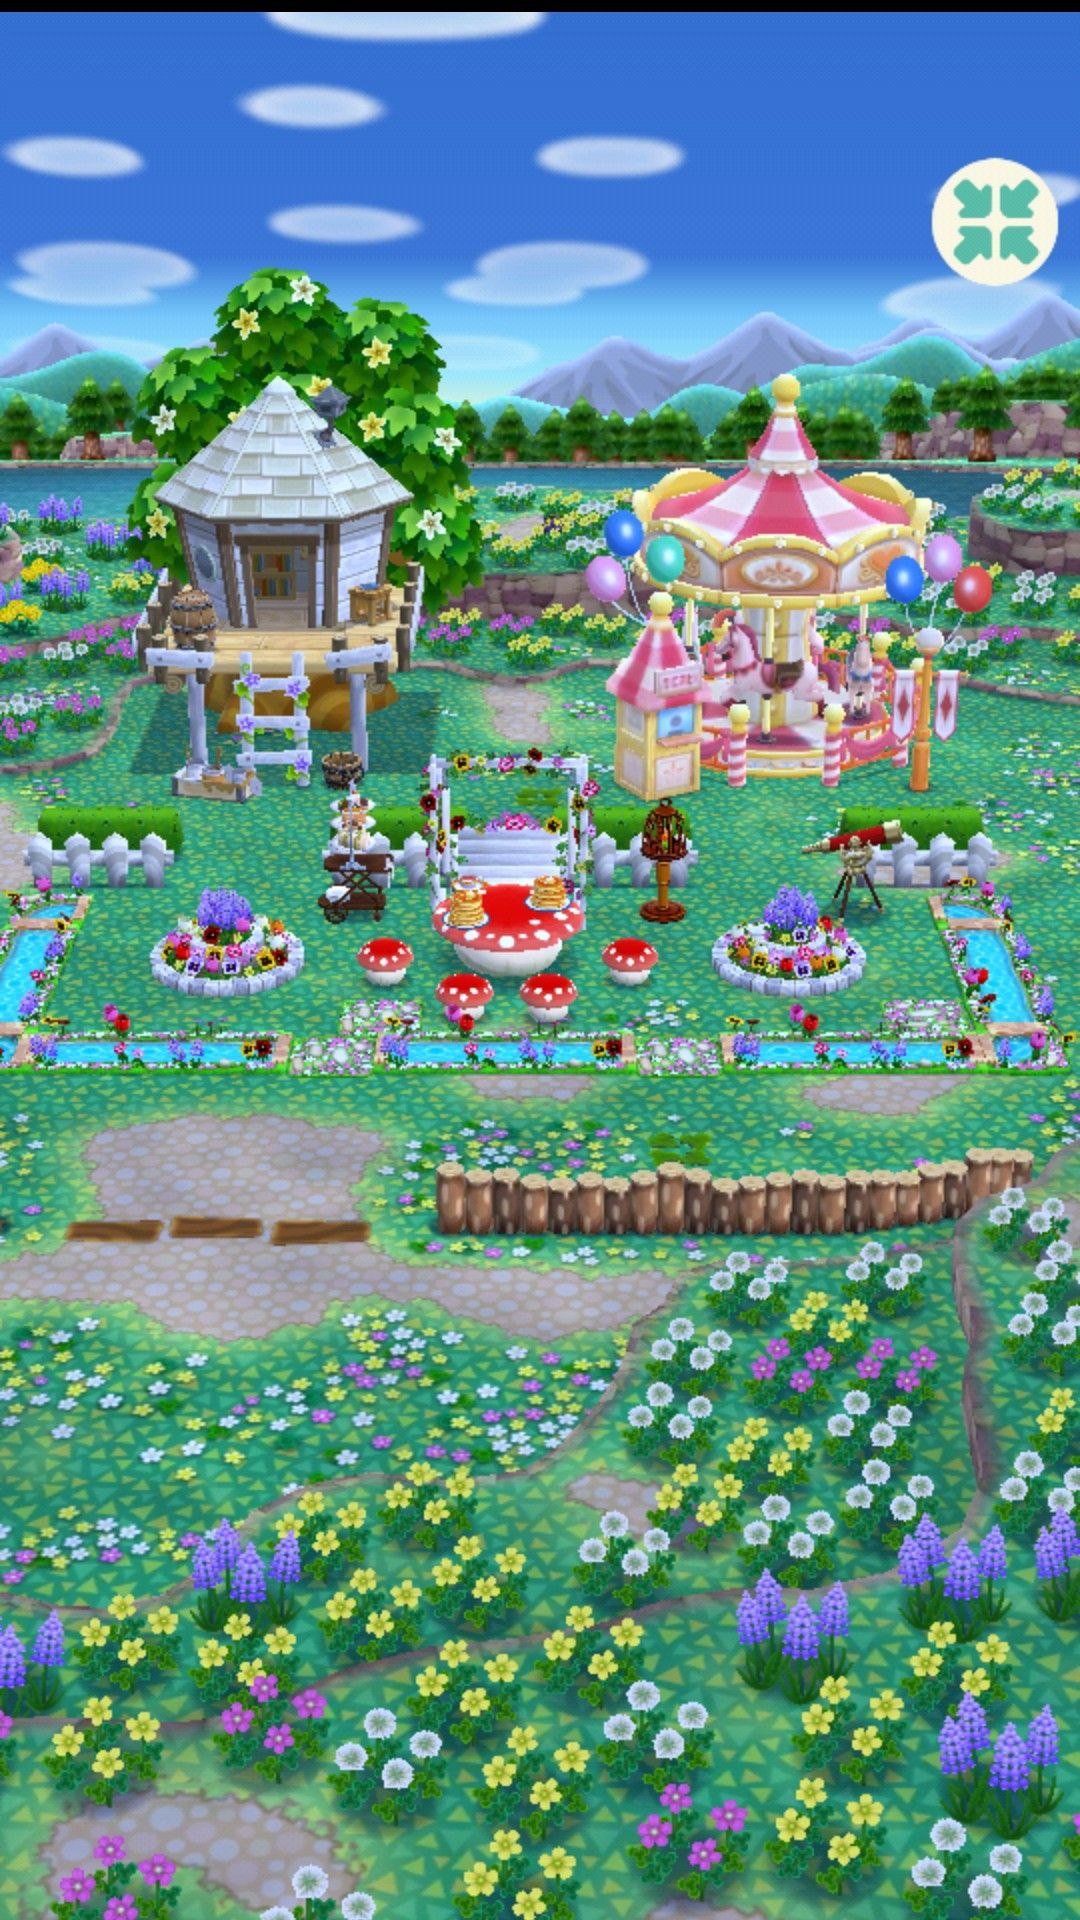 14++ Animal crossing pocket camp ideas images